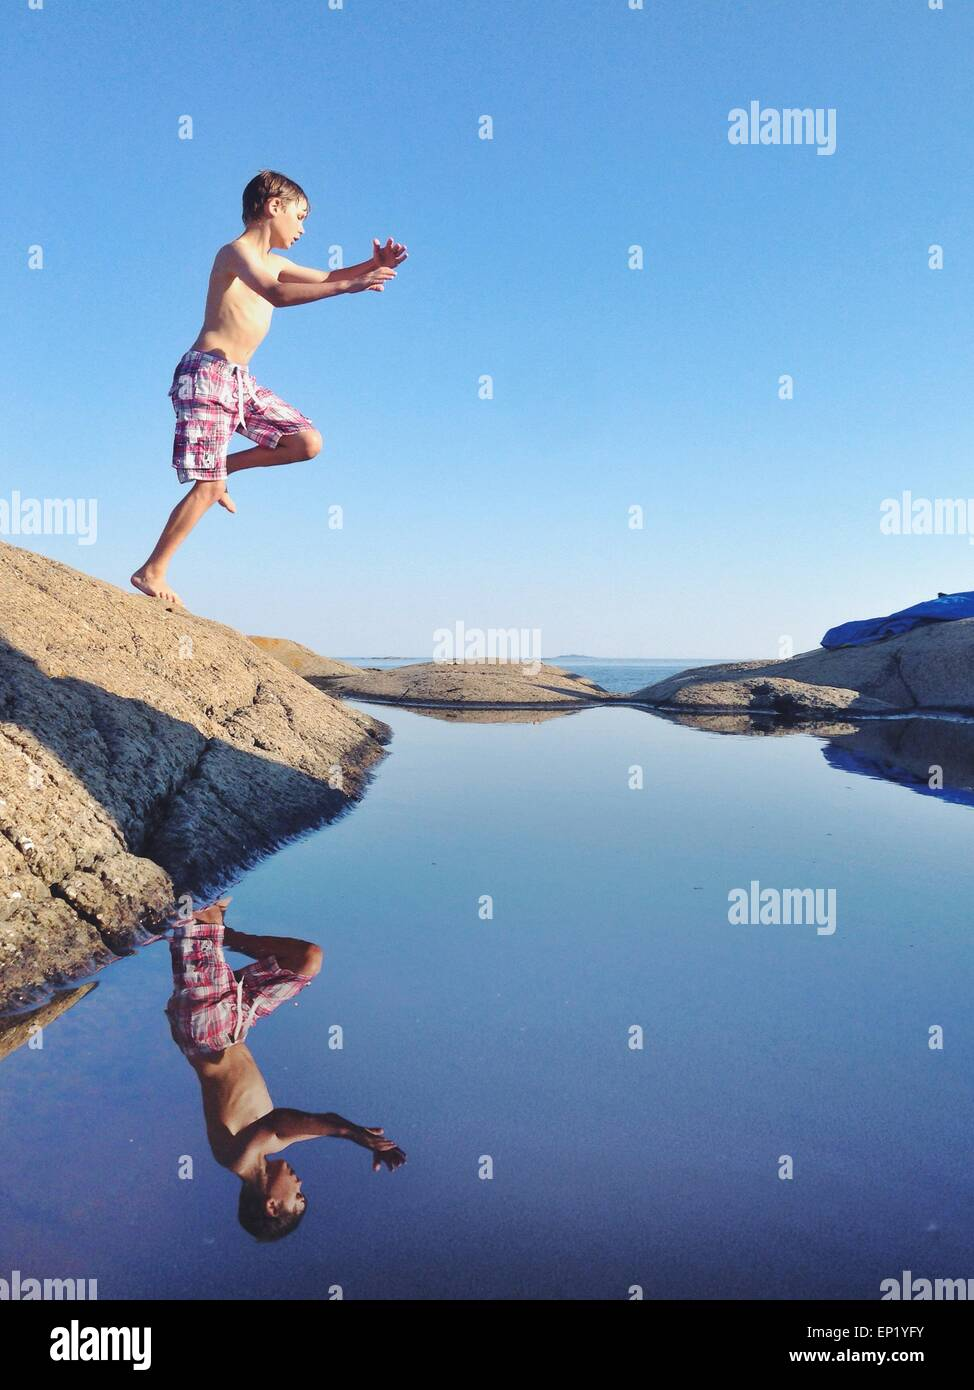 Boy jumping off a rock into the sea - Stock Image